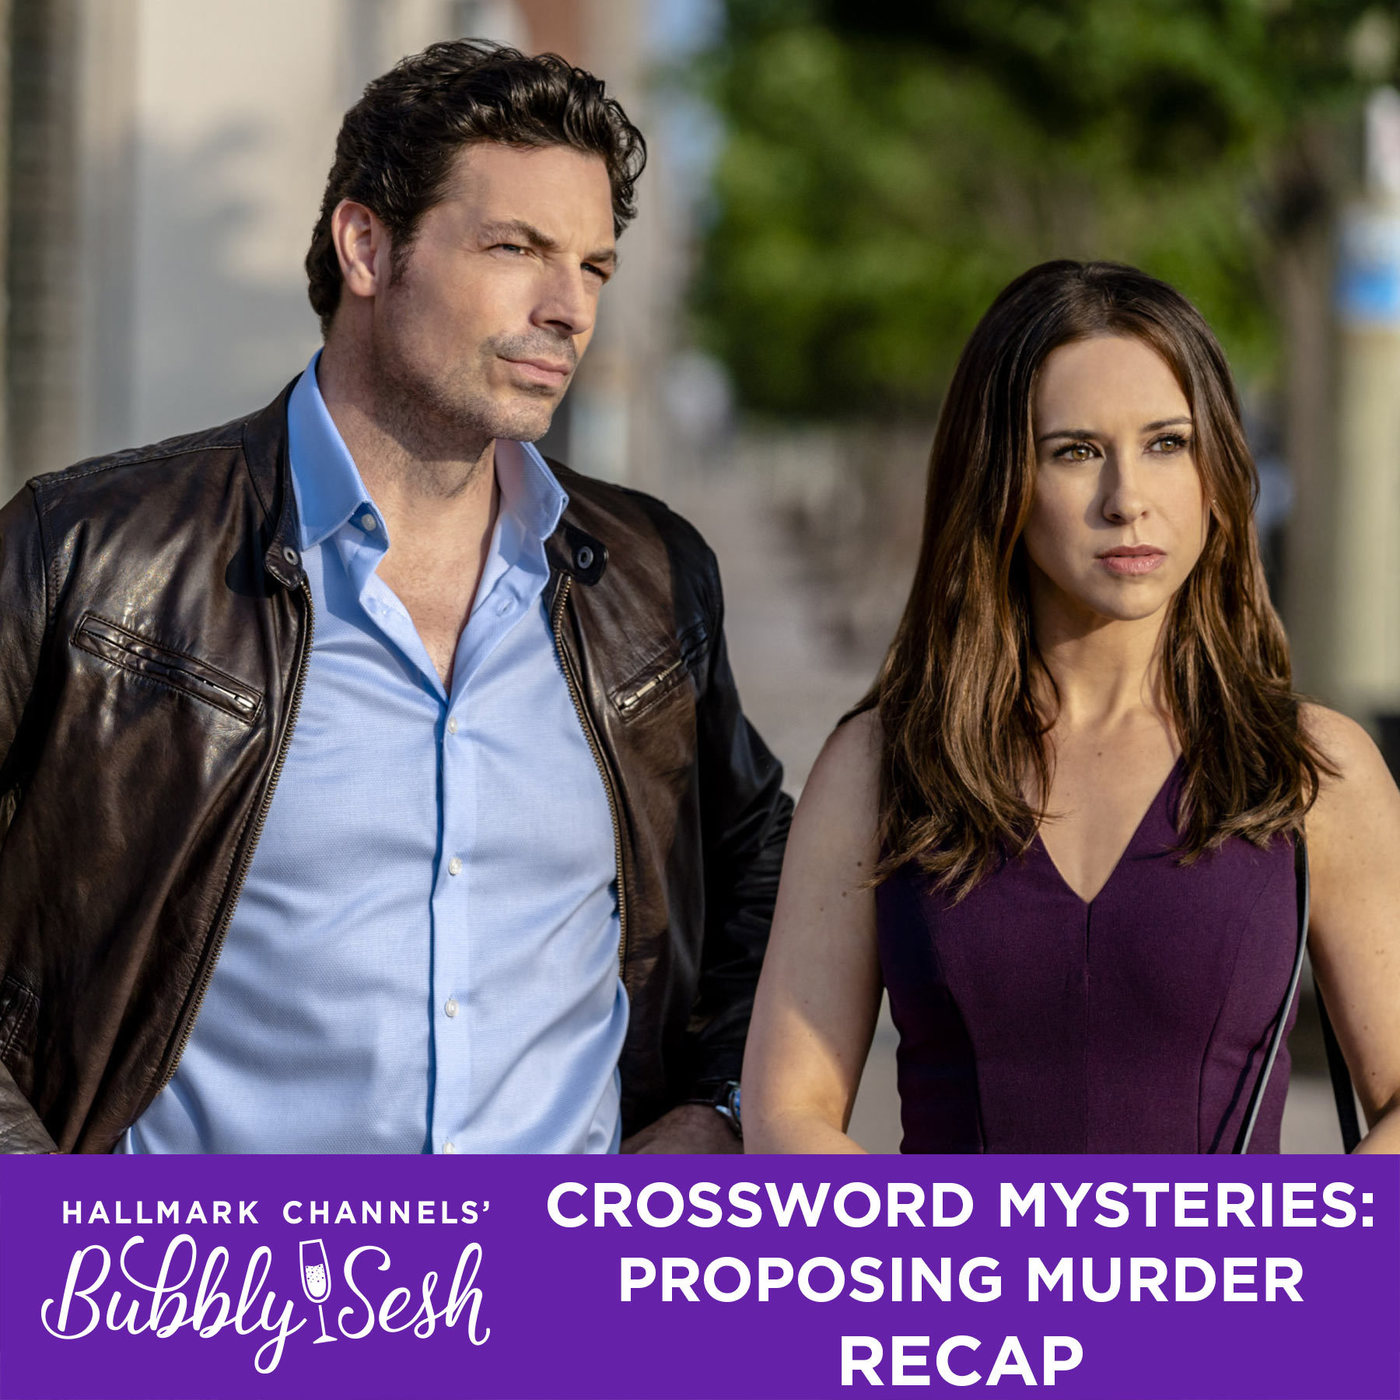 Crossword Mysteries: Proposing Murder Recap